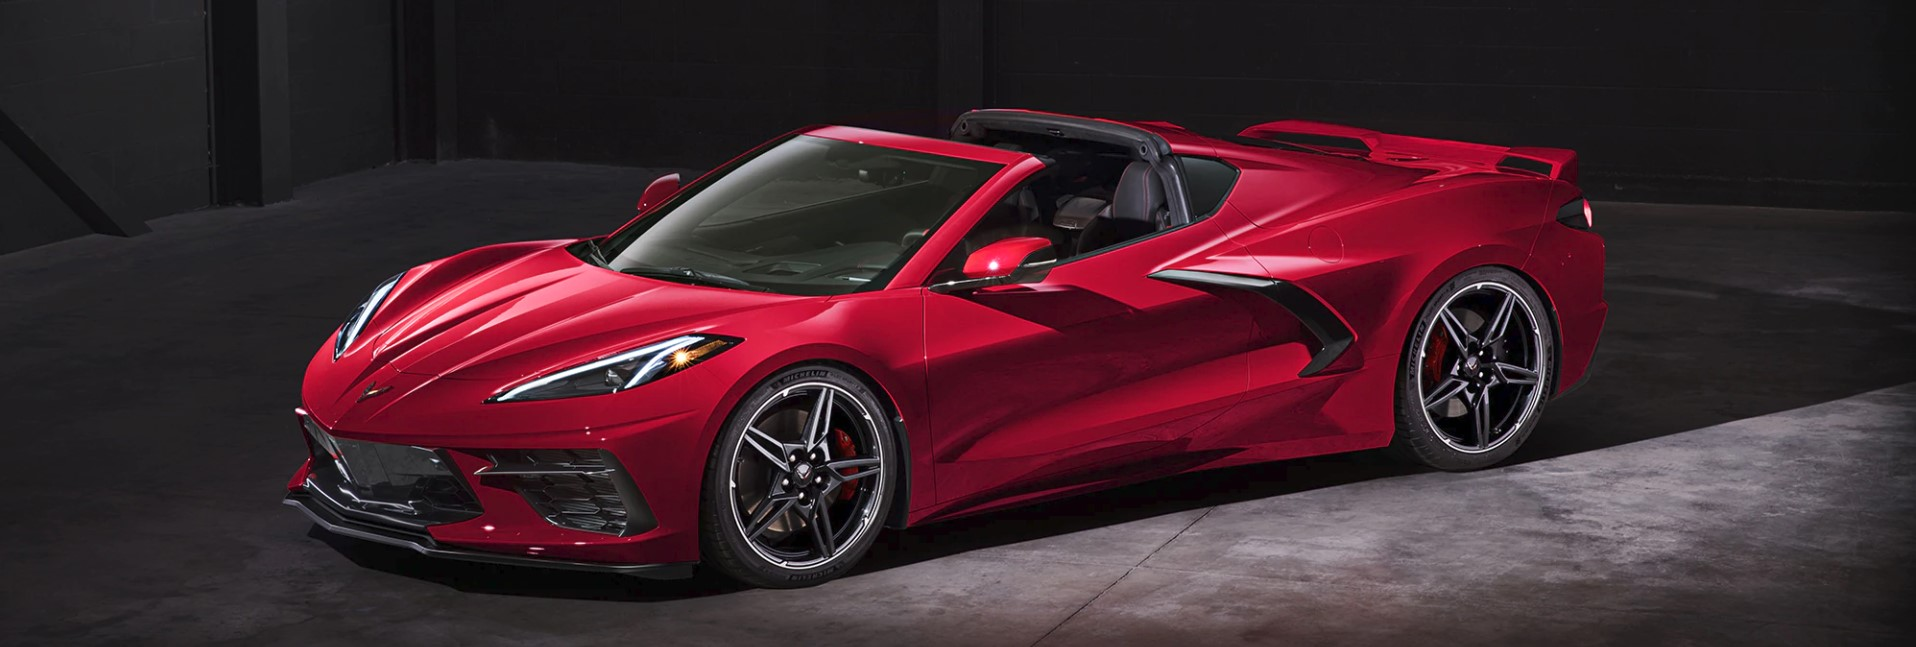 2020 Chevrolet Corvette First Look in Youngstown, OH